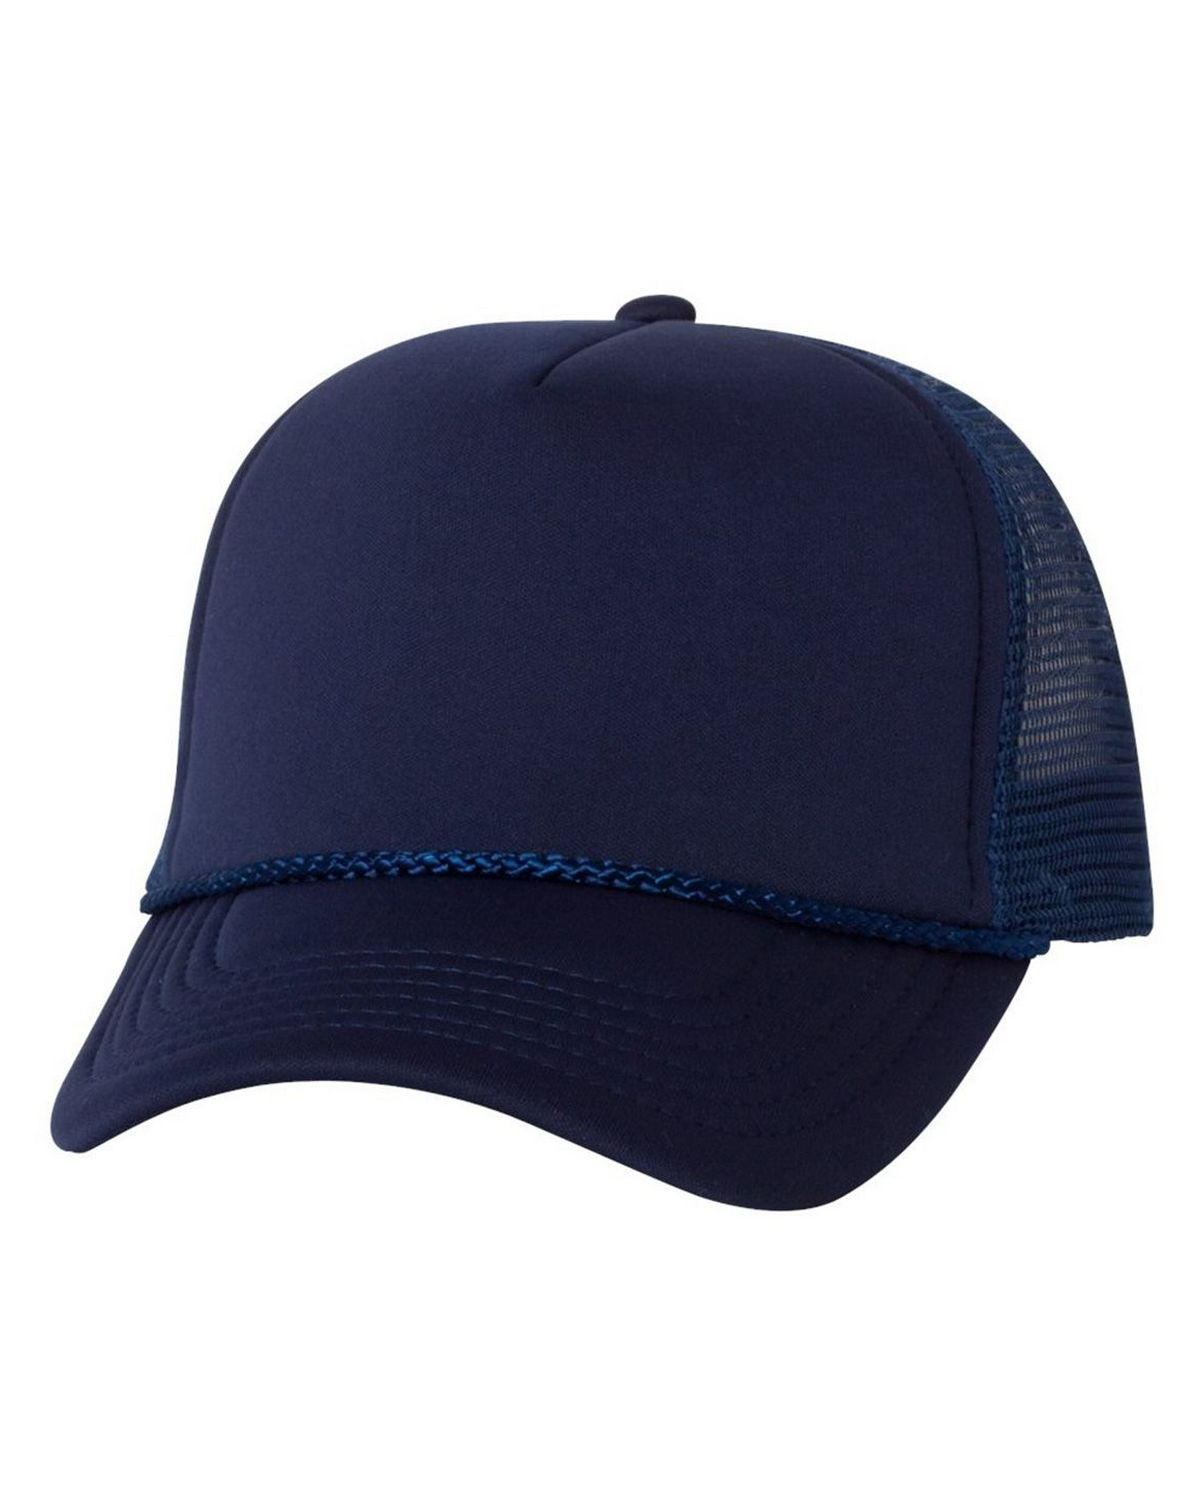 477994c727ad3 Valucap VC700 Foam Trucker Cap - Free Shipping Available